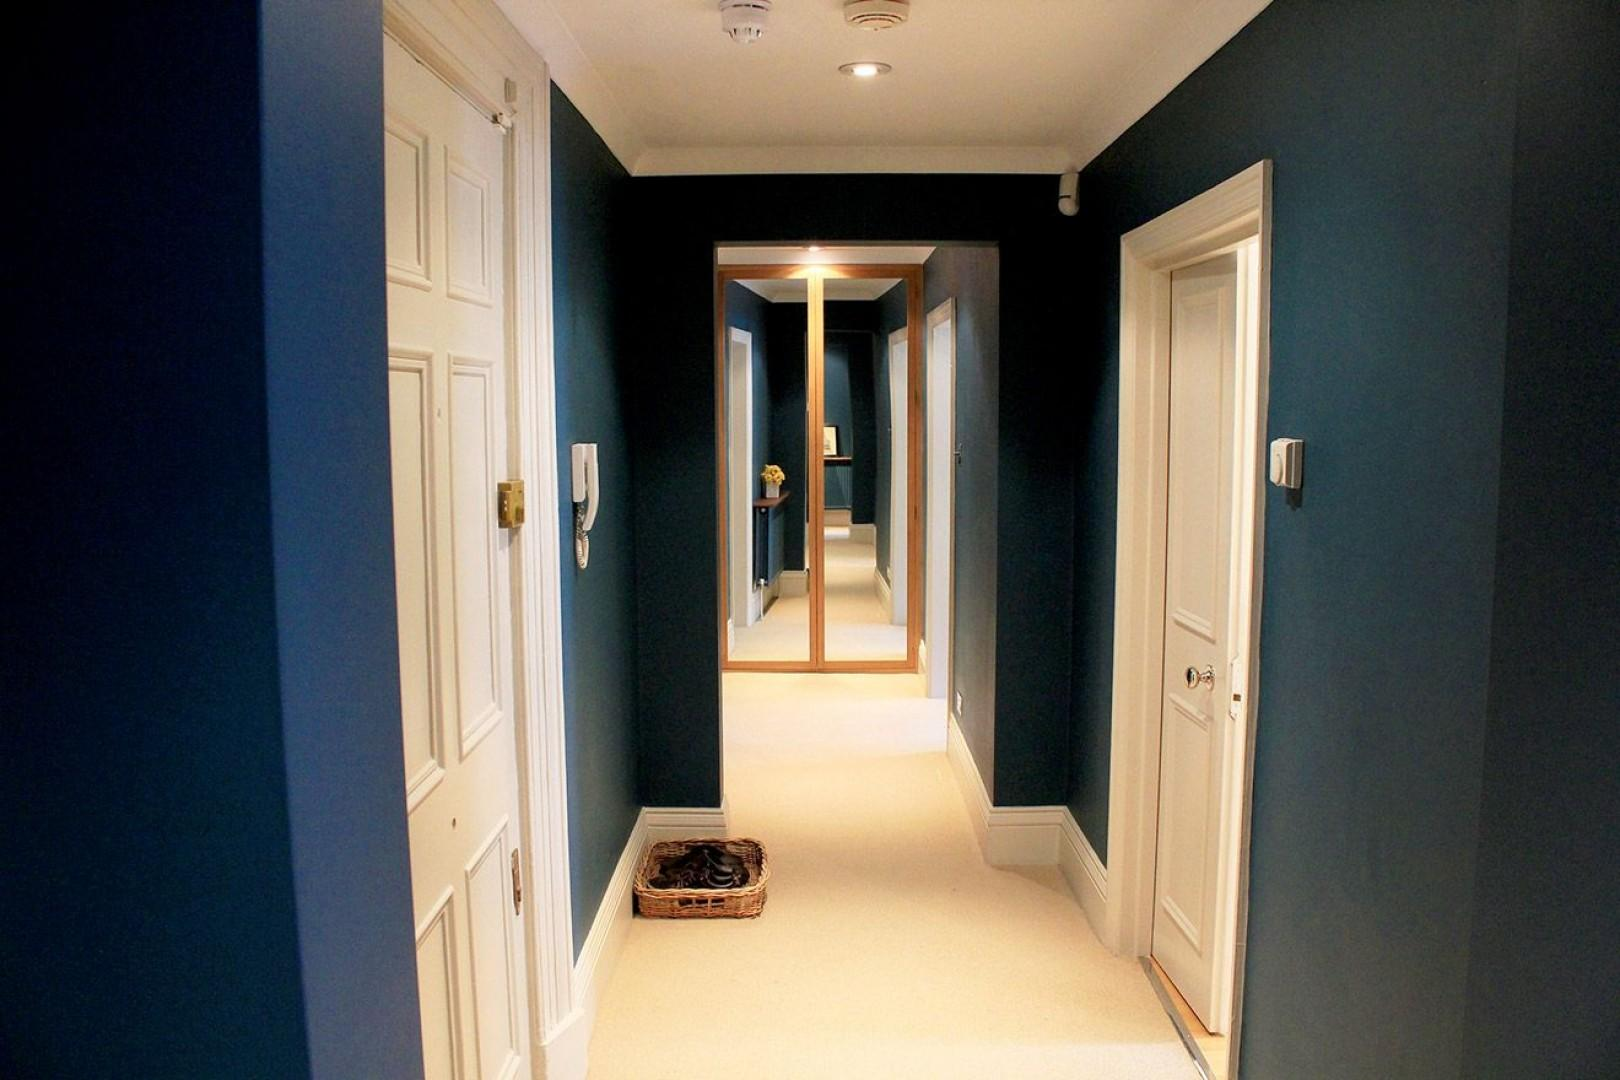 Hallway with stunning deep blue walls leads to bedrooms